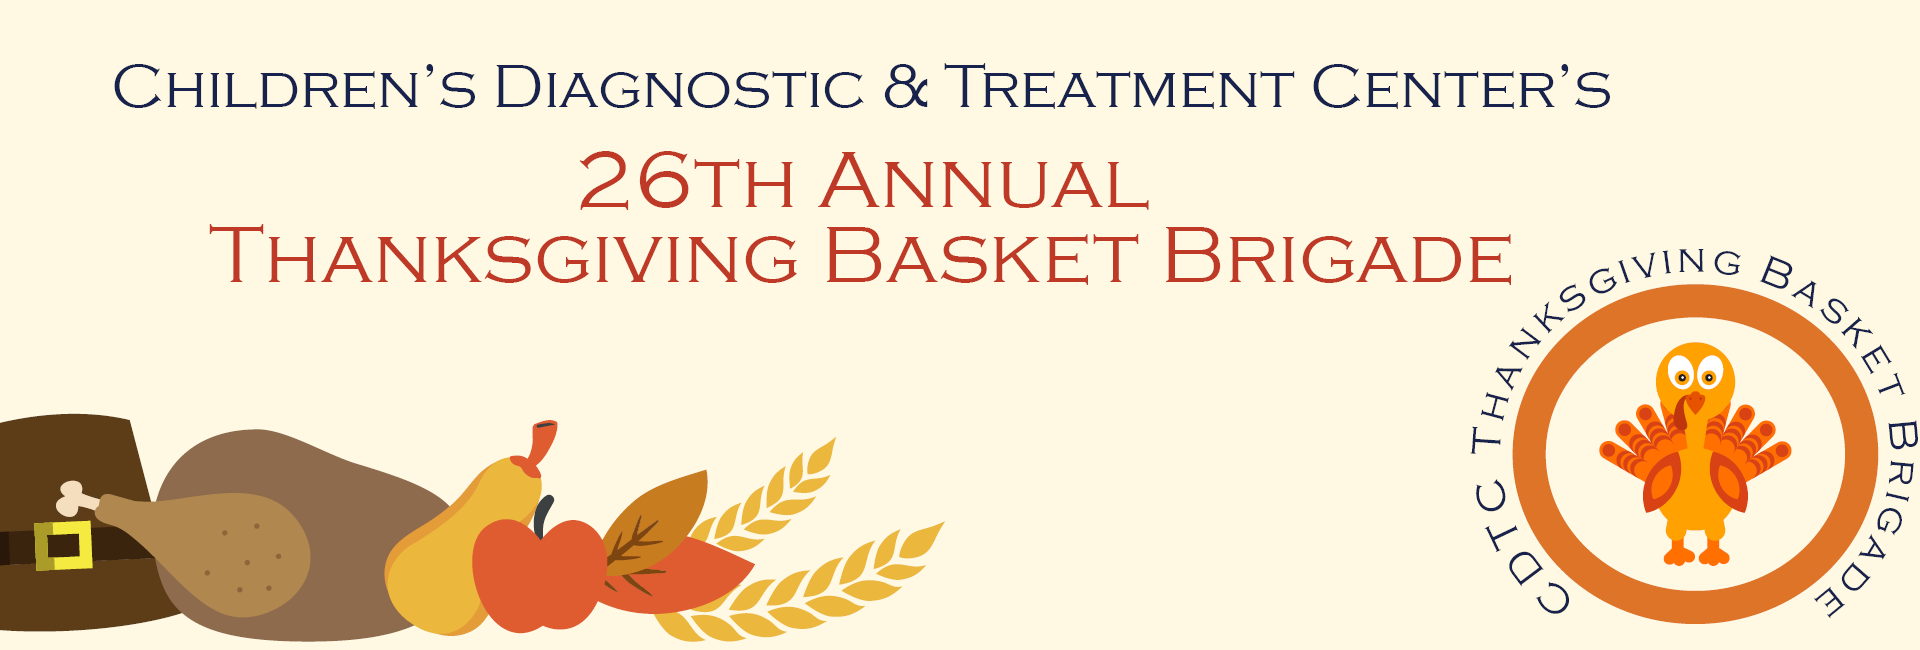 Thanksgiving Basket Brigade Nov 18th Children S Diagnostic Treatment Center